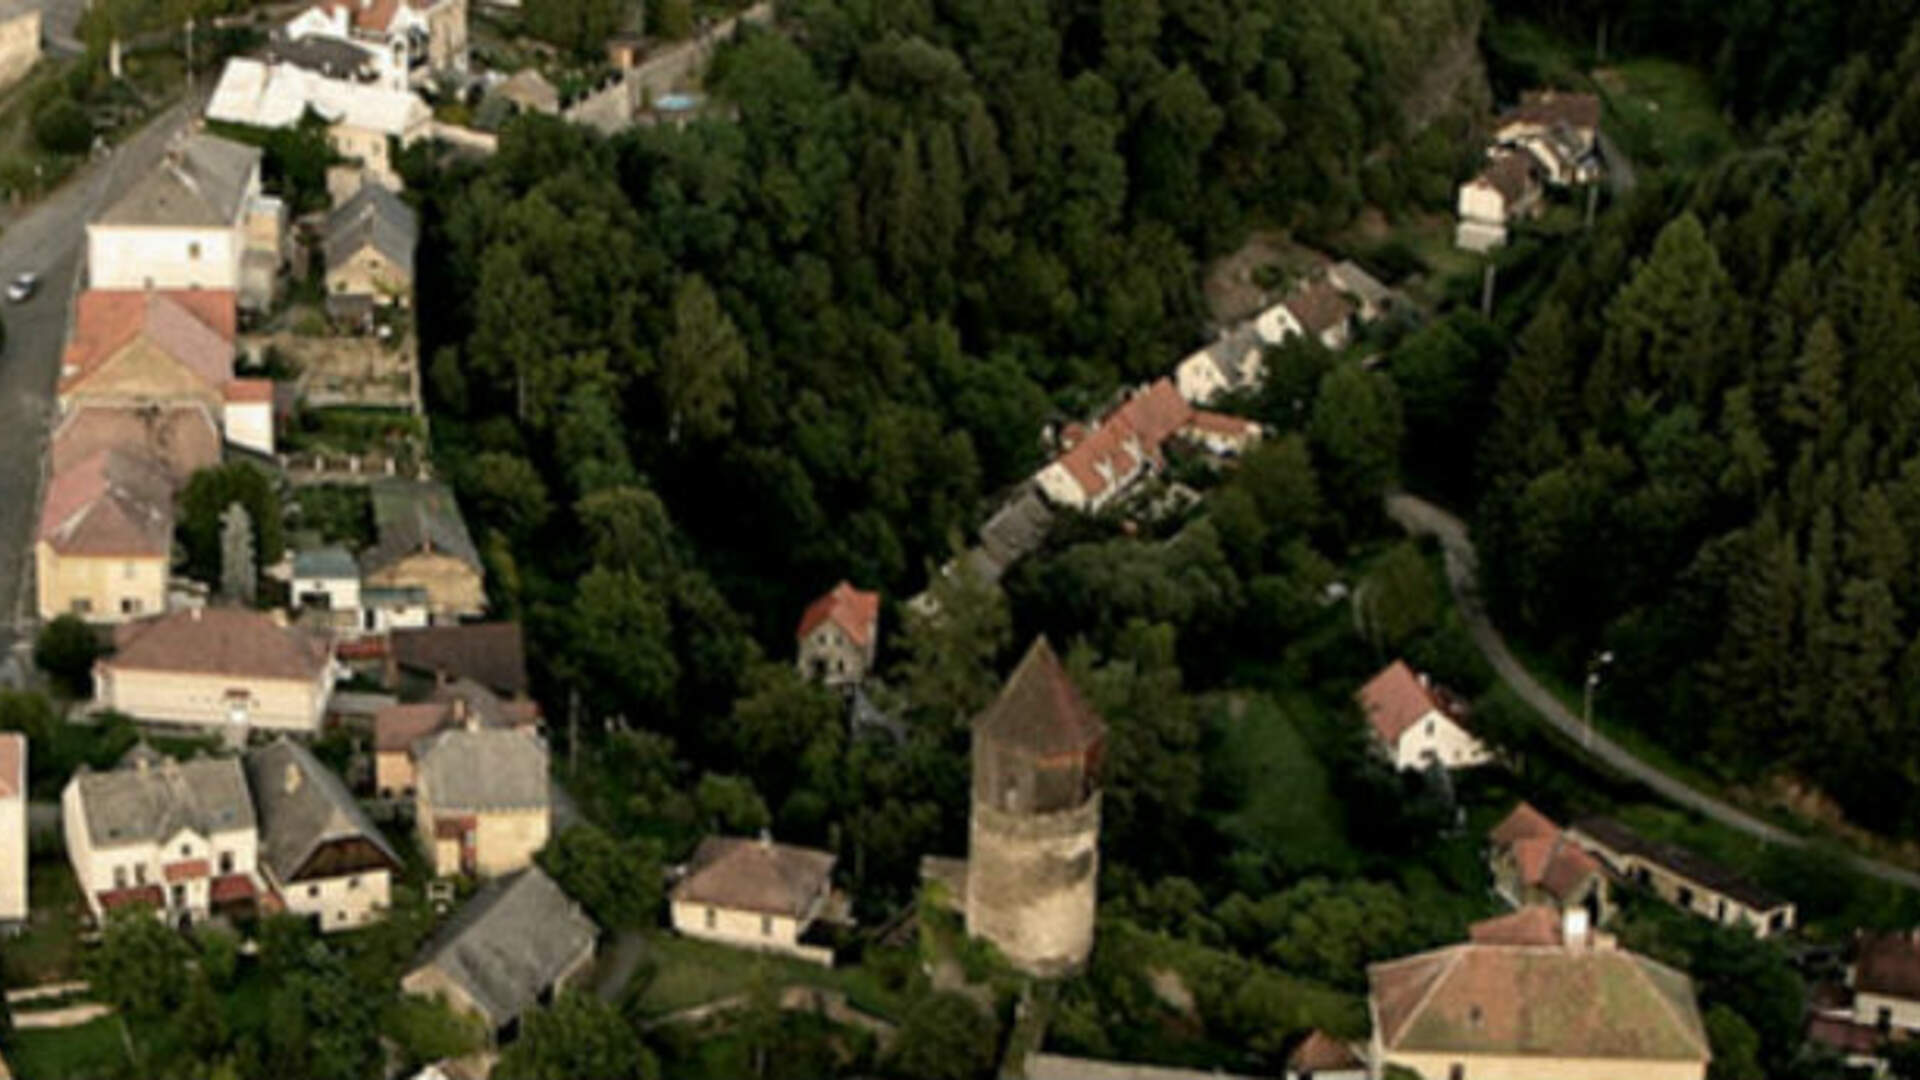 Kingdom Come: Deliverance's Town of Rattay Looks Different in Real Life, but Not by Much